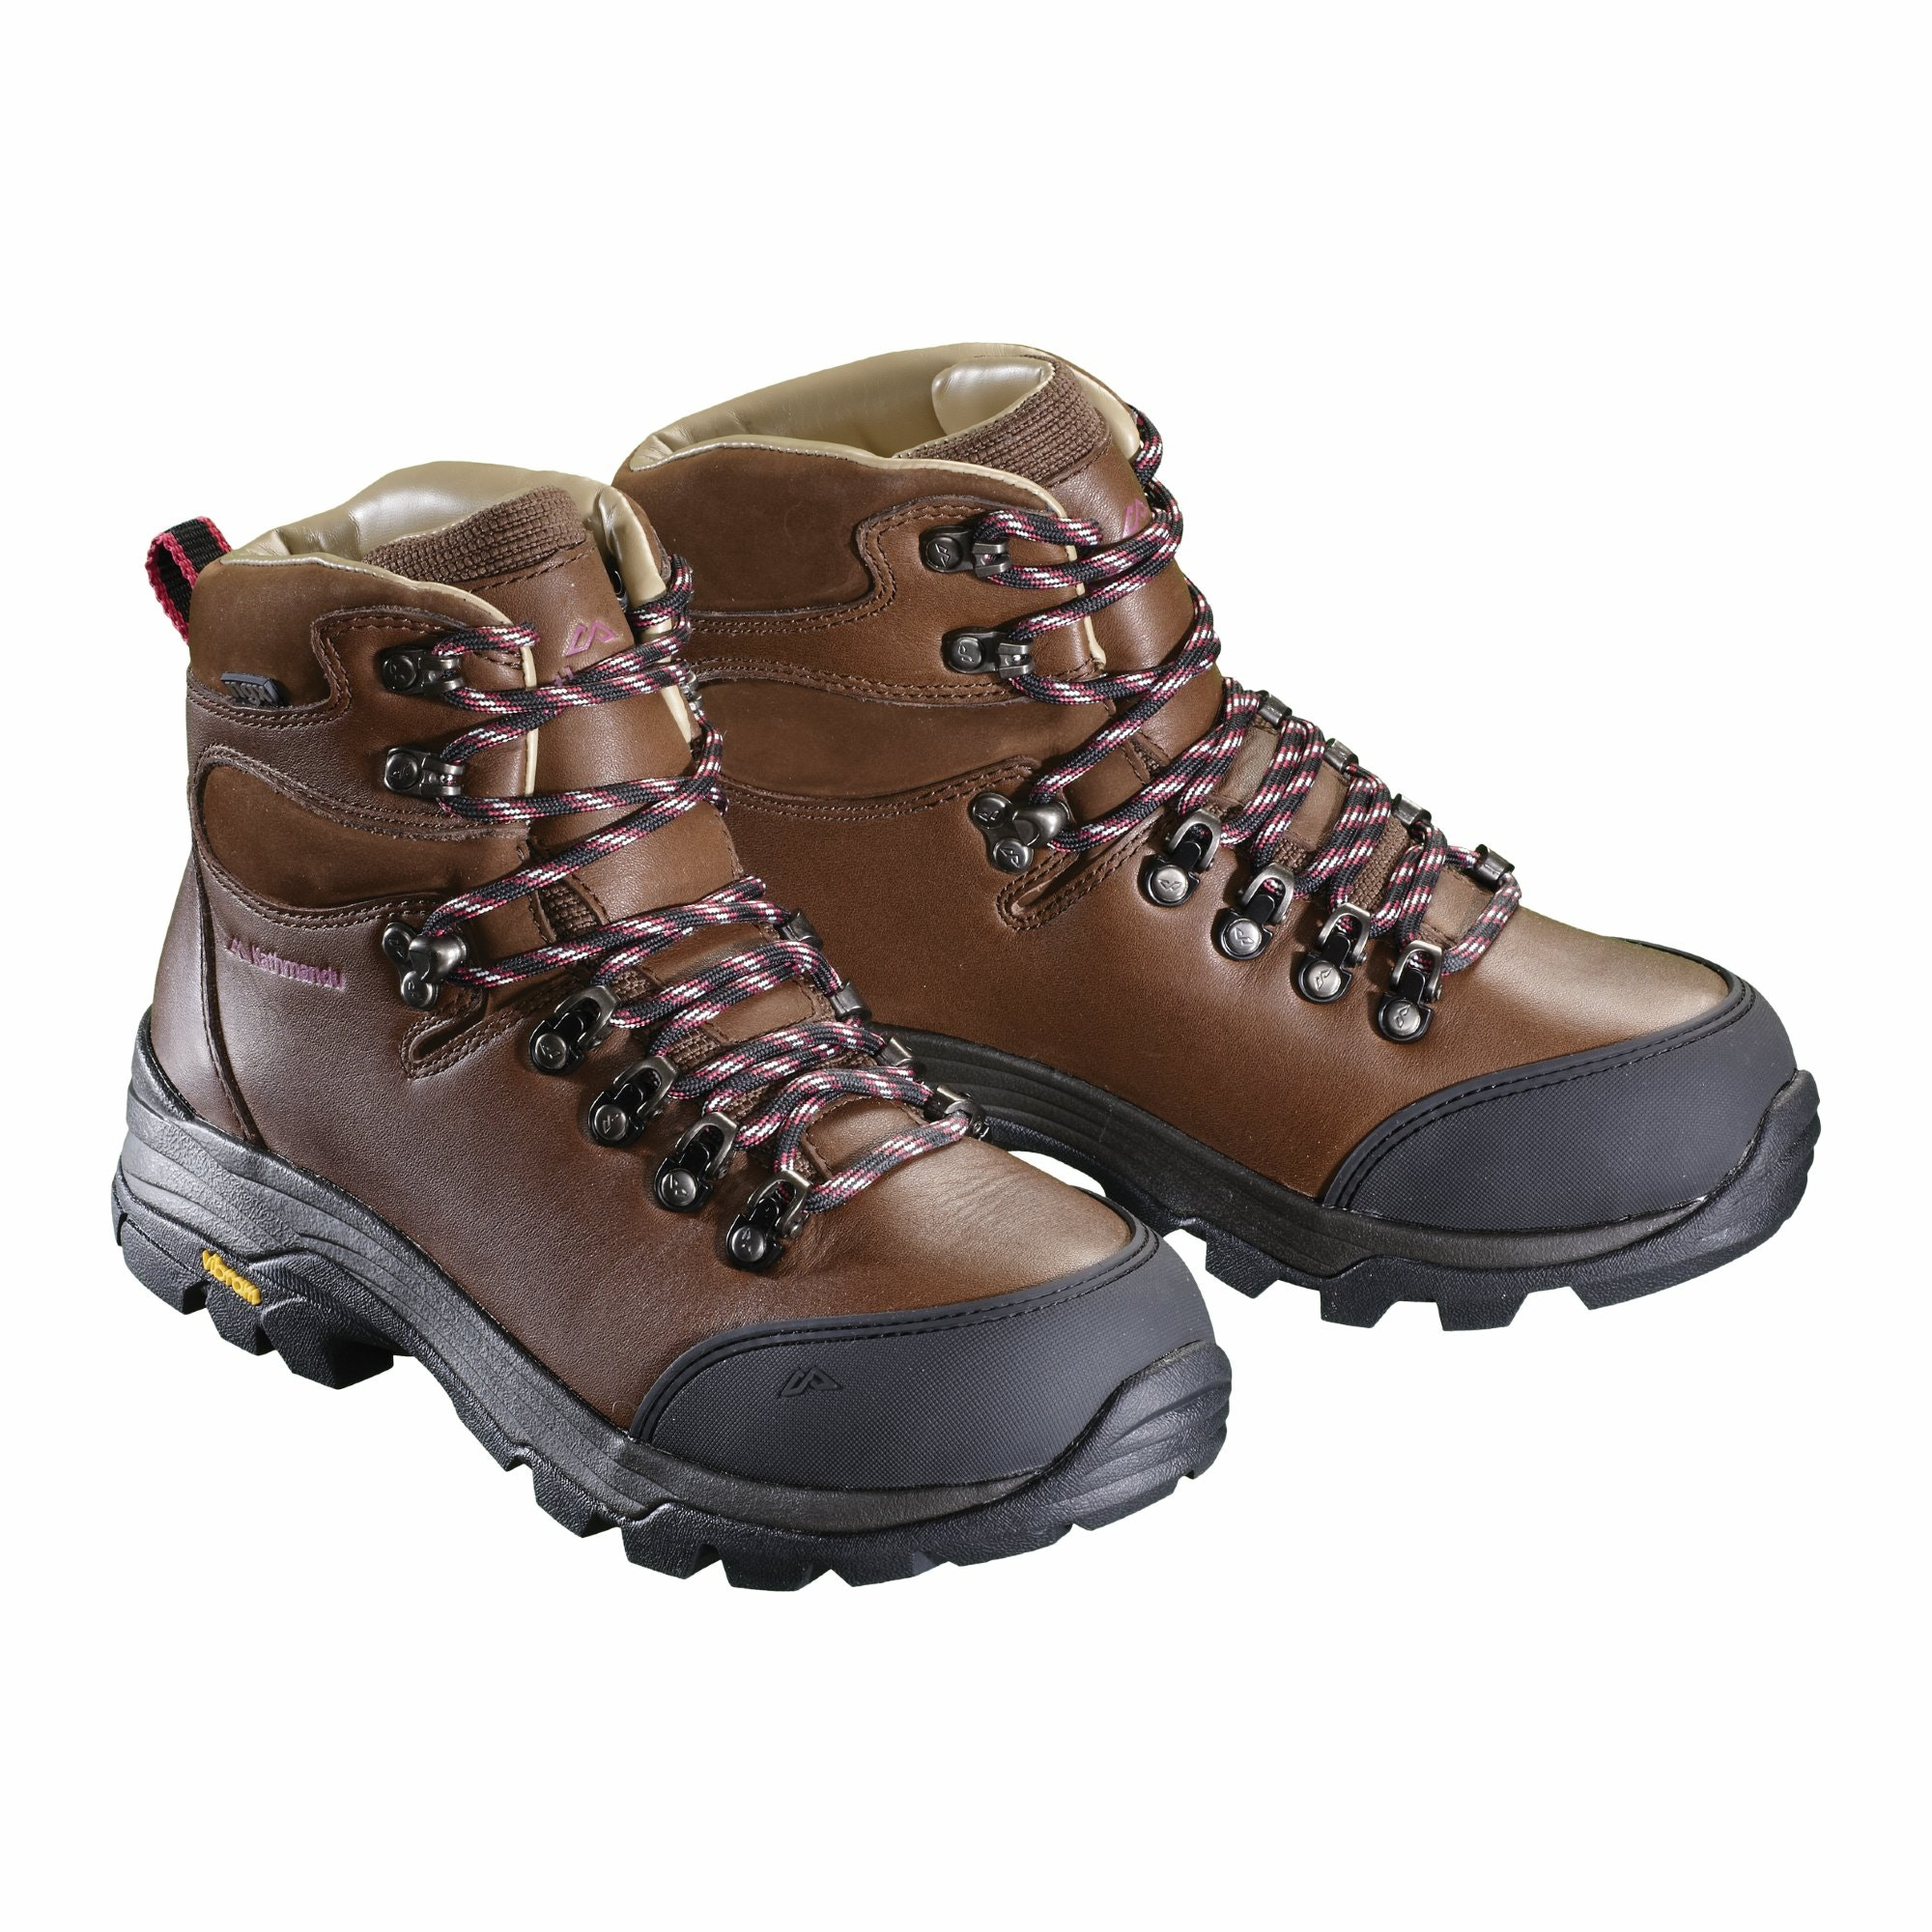 Tiber Women's NGX Leather Hiking Boots